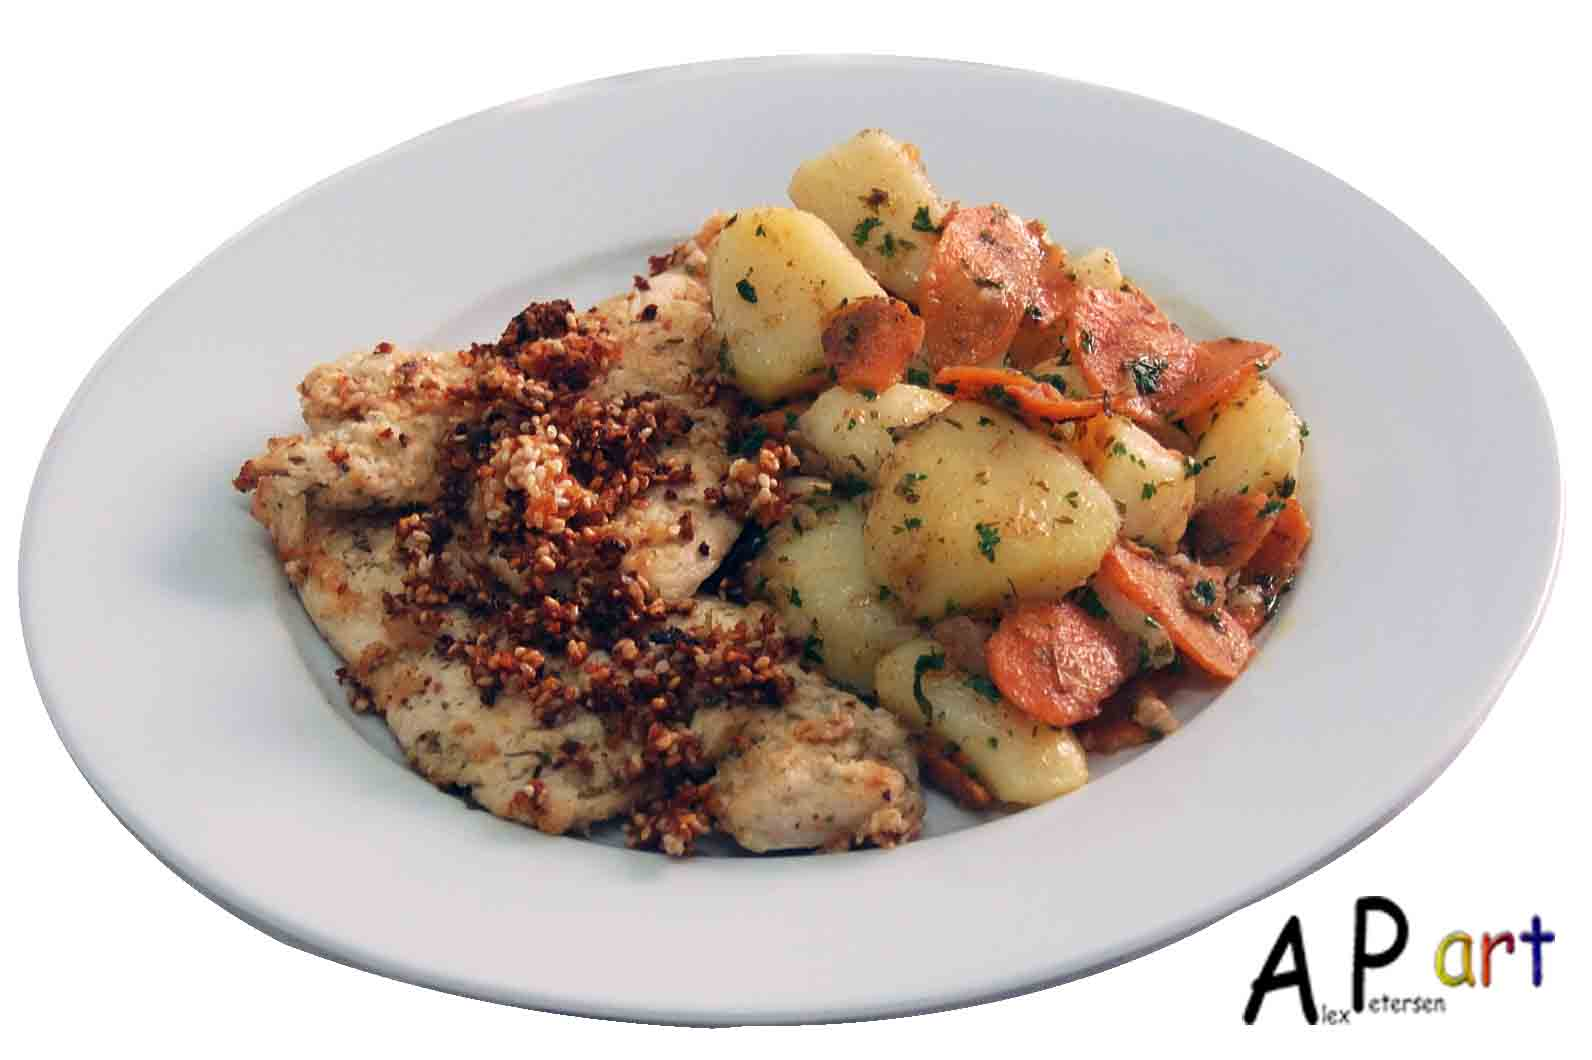 ... Culinarian: Lime Coriander and Ginger Schnitzel with Braised Potatoes